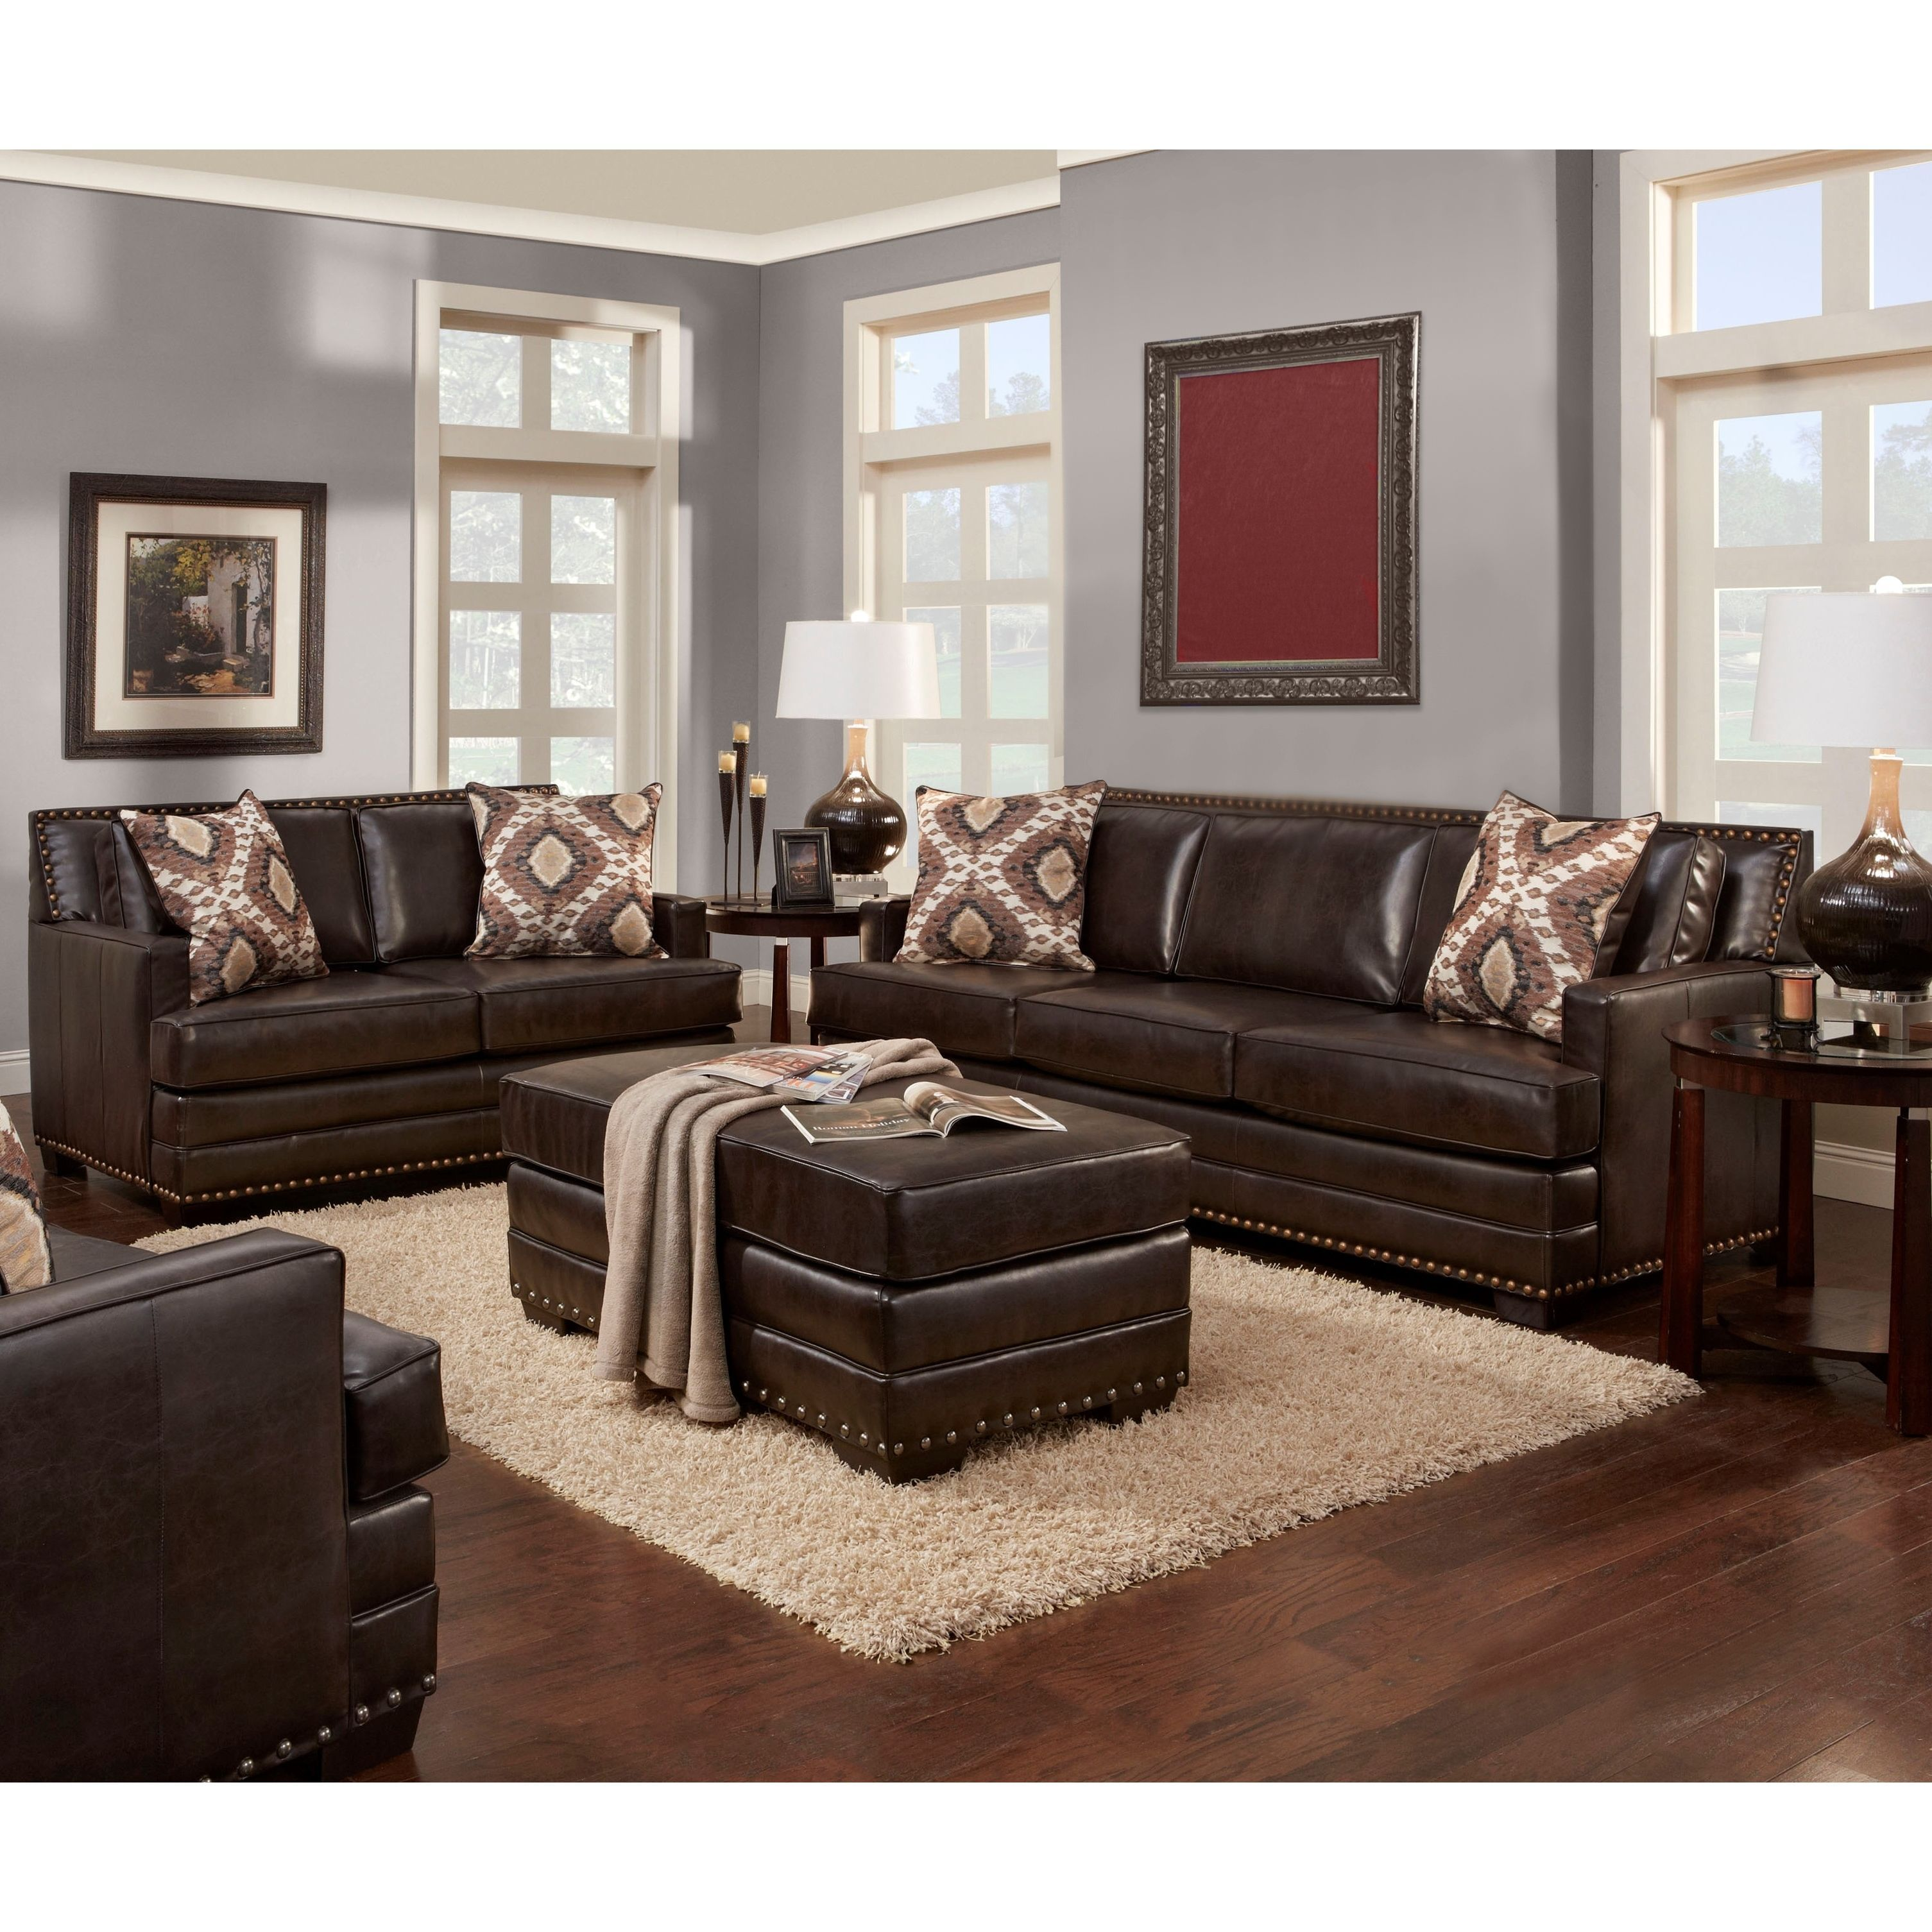 Sofa Trendz Bruce Collection Brown Faux Leather Loveseat And Ottoman Set 3 Pc Sofe Love